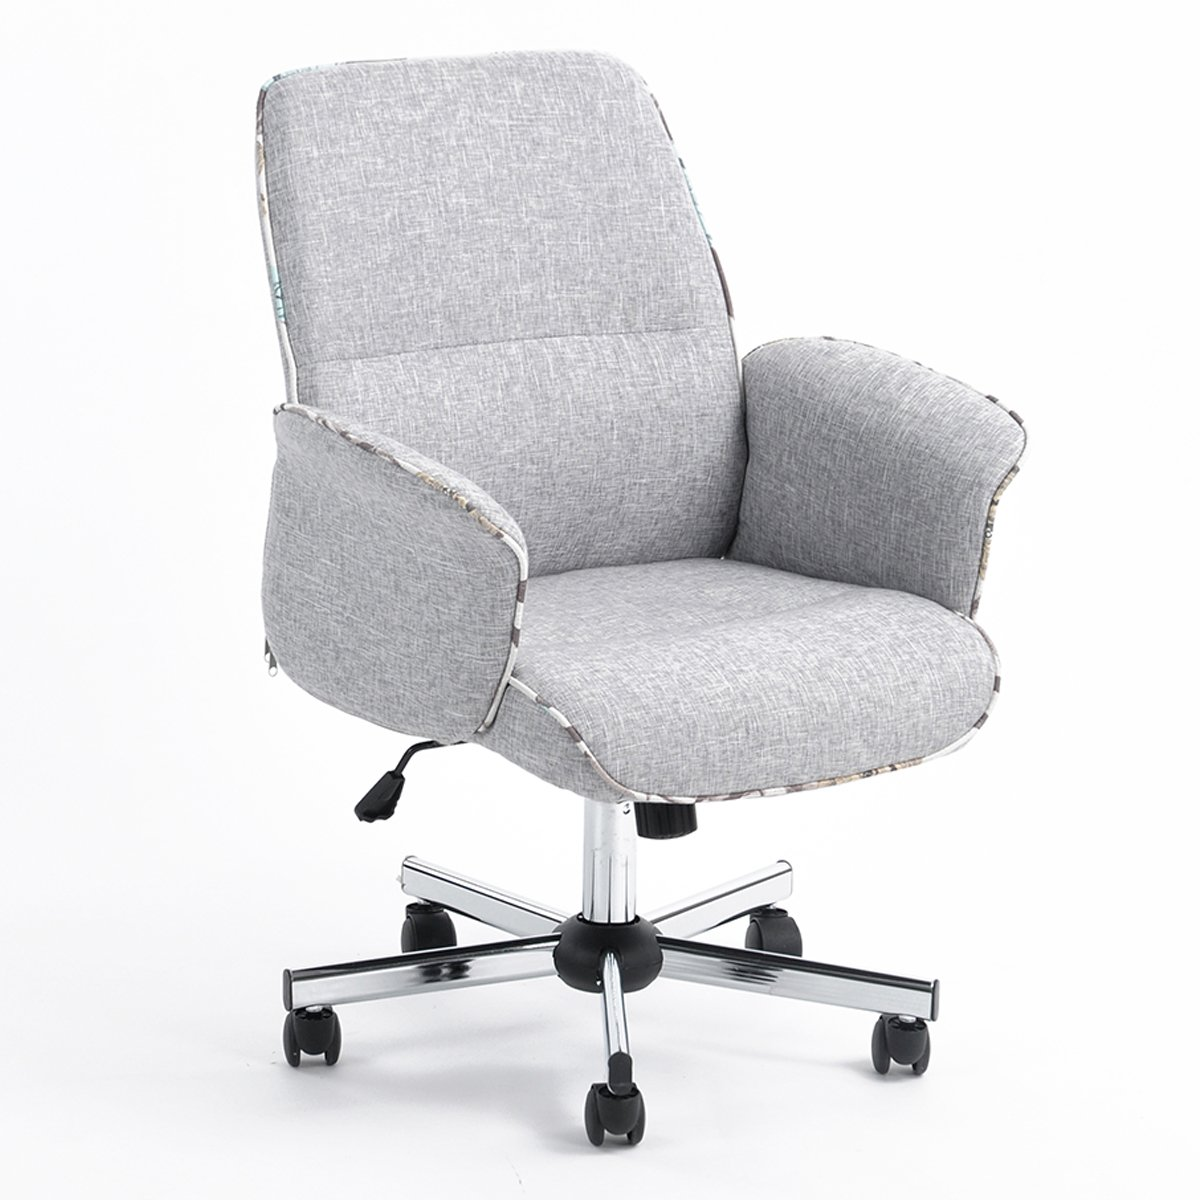 Vogue Carpenter Home Office Chair Height Adjustable Task Chair Fabric Leisure Grey Computer Chair With Arms